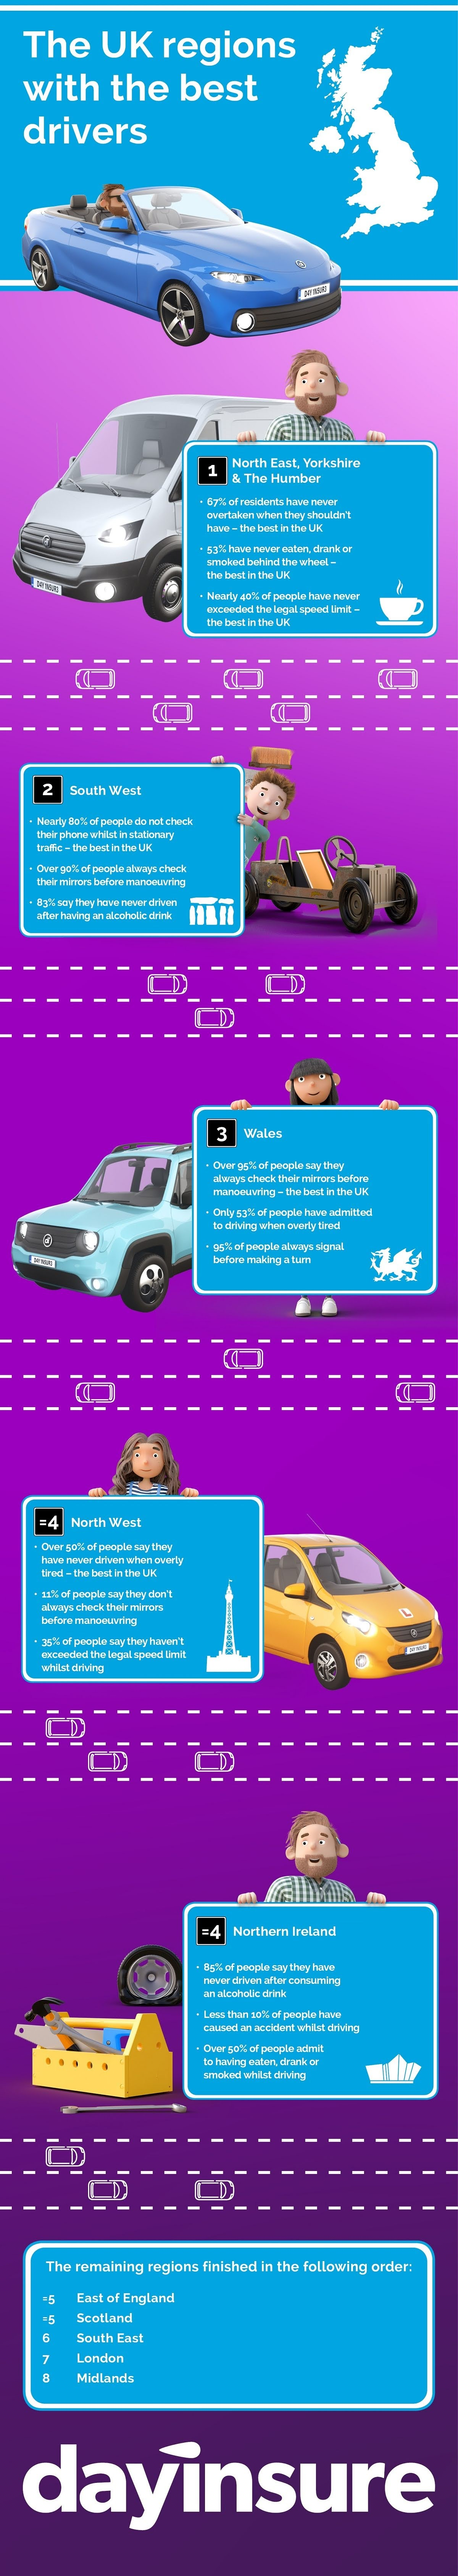 Which UK region is home to the best drivers? #infographic